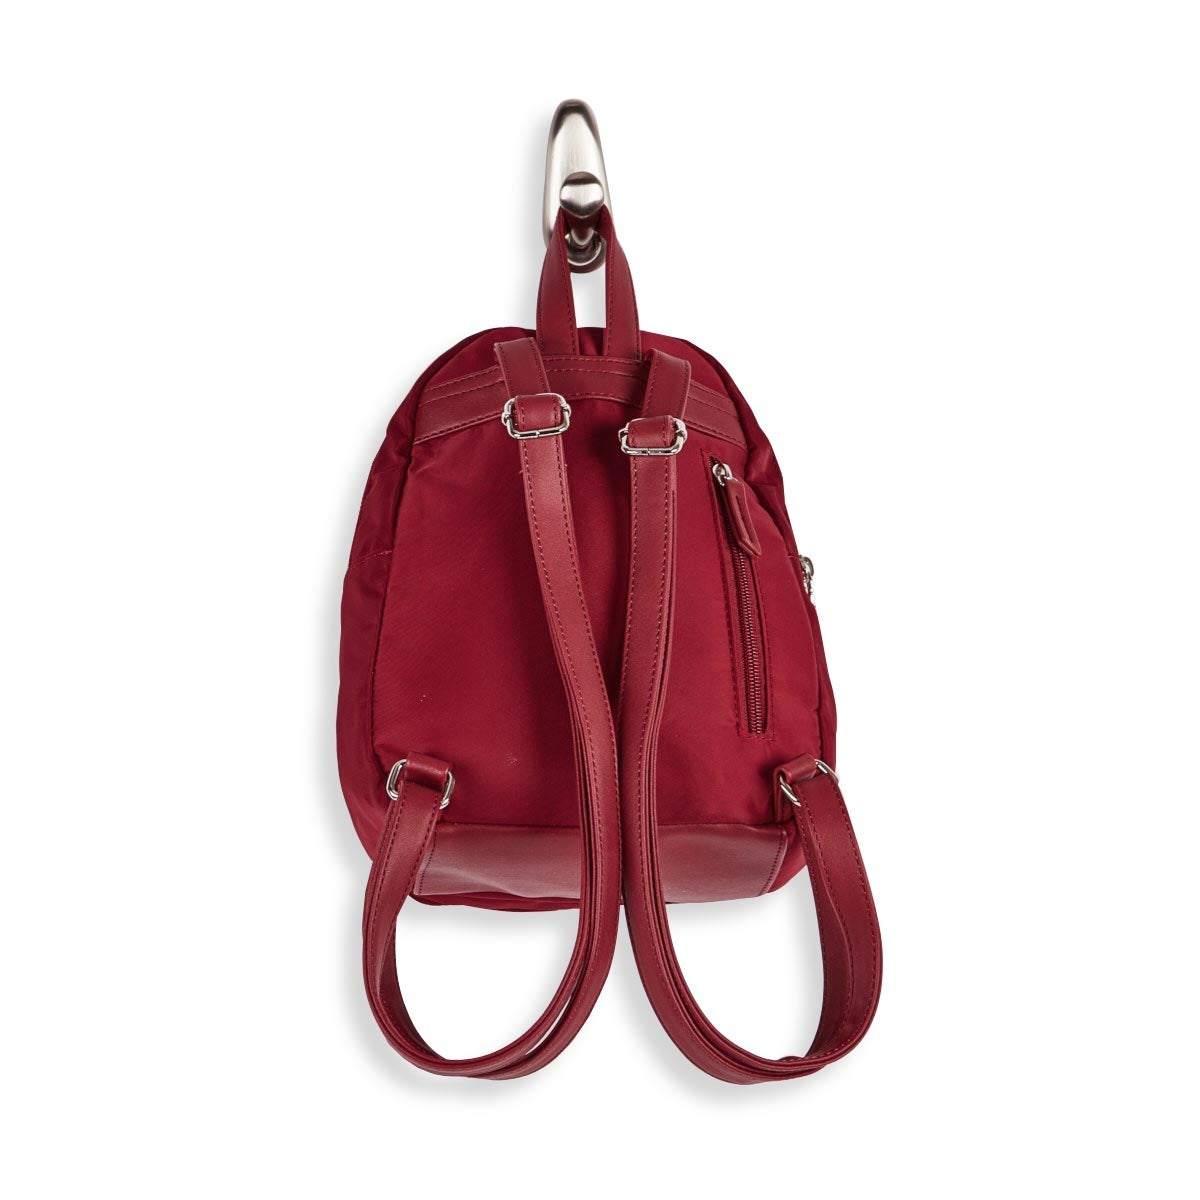 Lds Roots73 red mini backpack